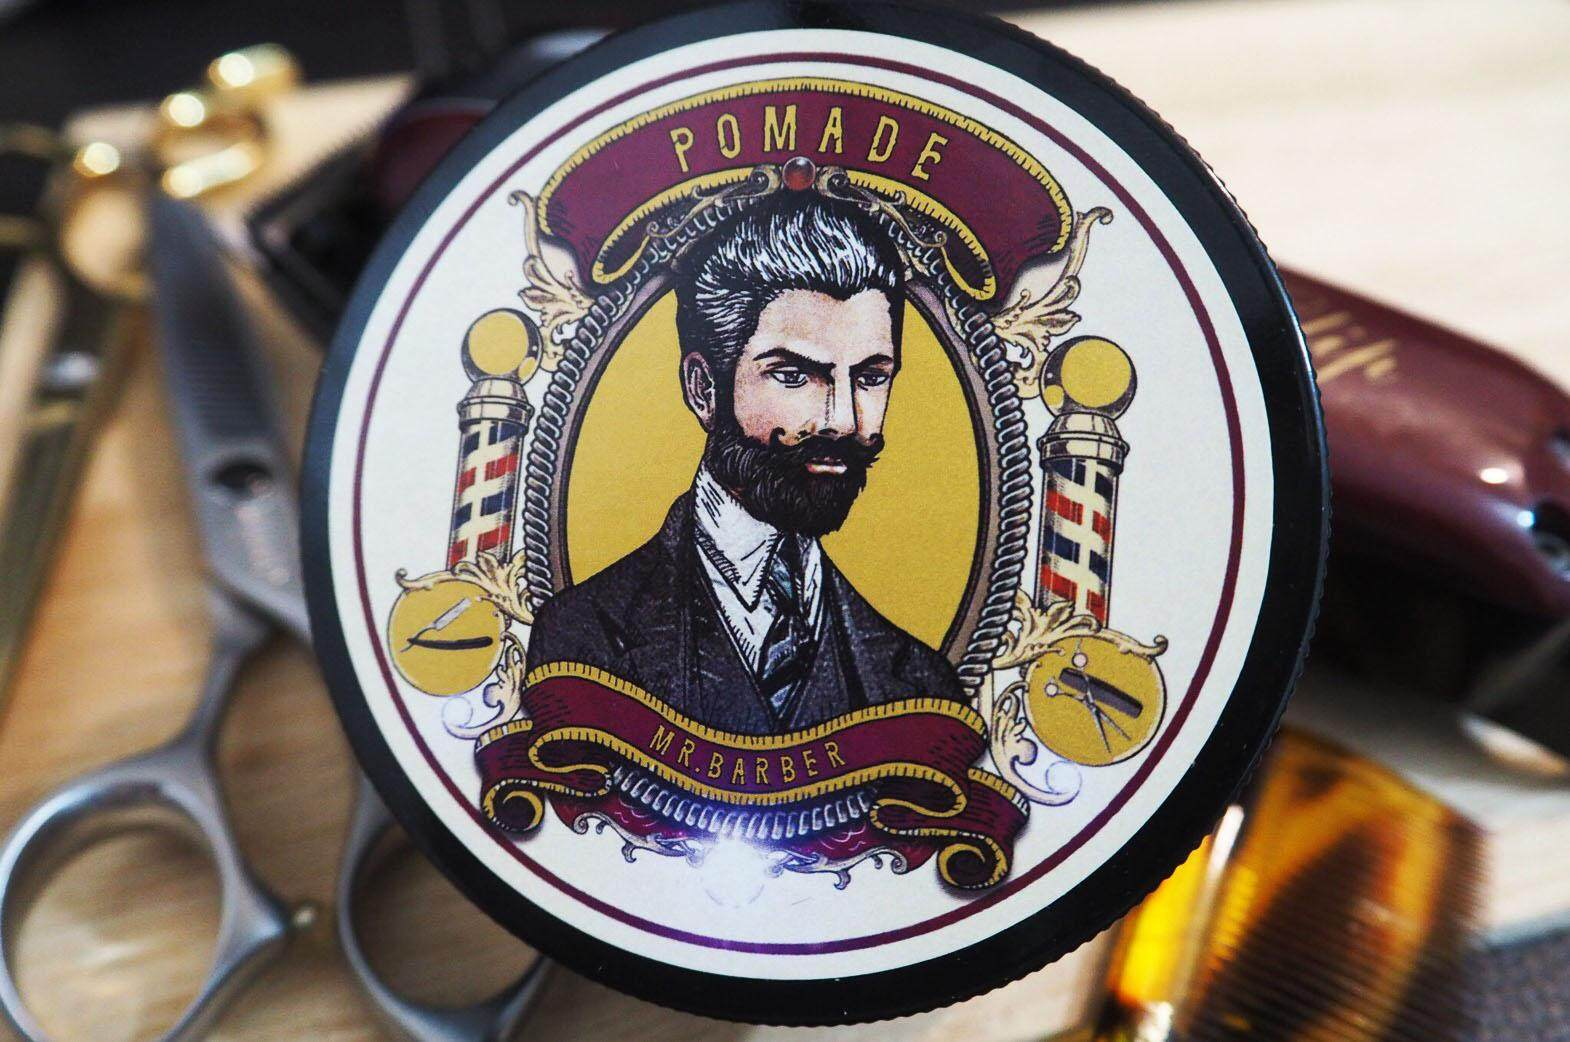 Mr.barber Pomade.